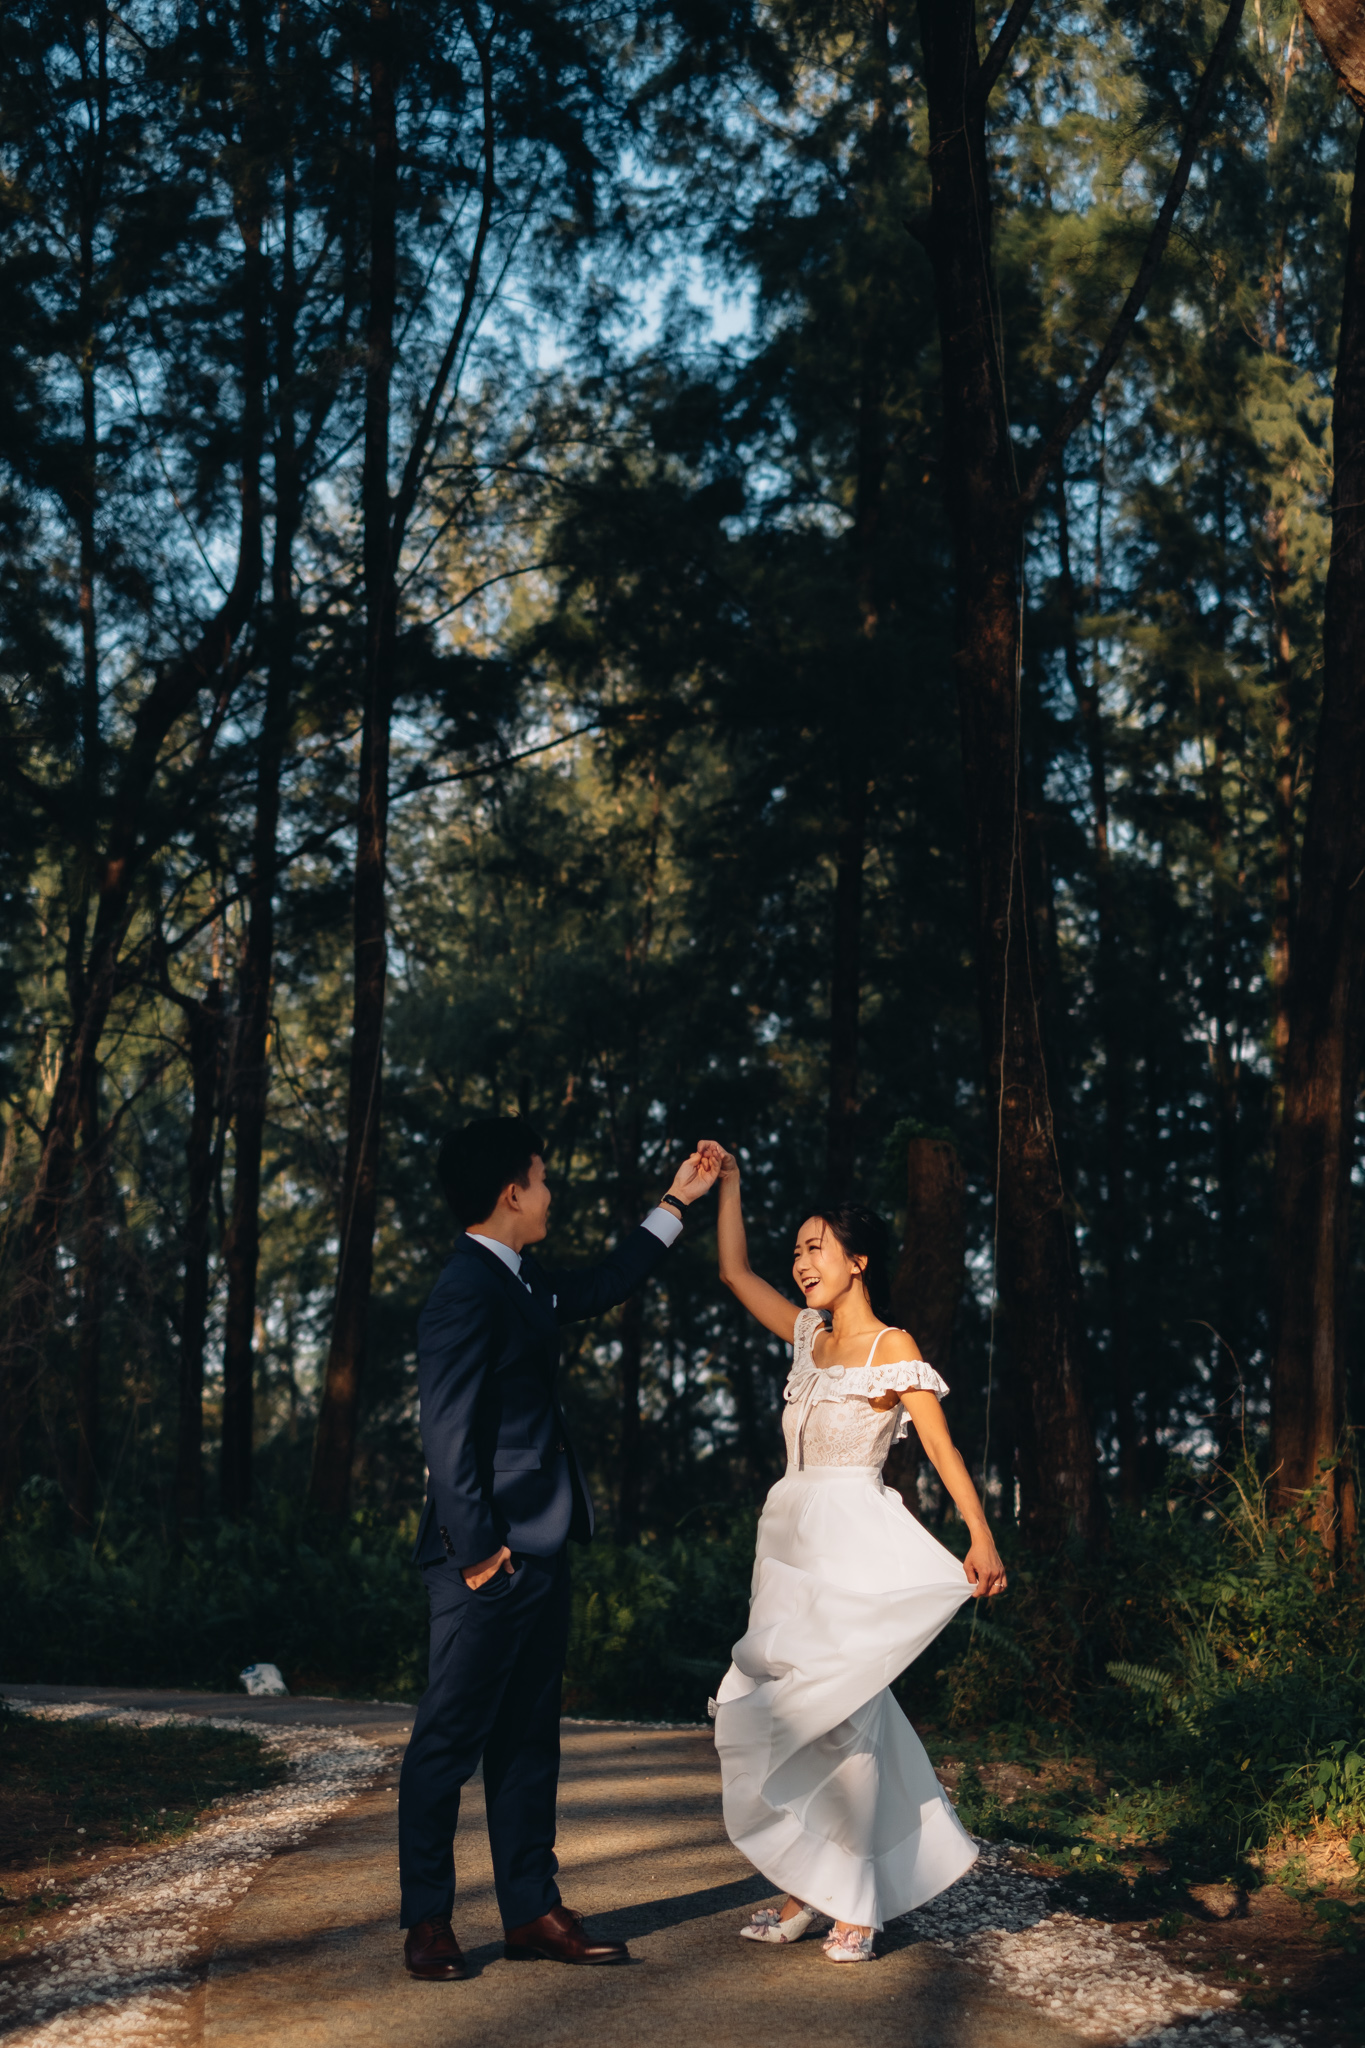 Sabrina & Willy Pre-Wed (resized for sharing) - 041.jpg